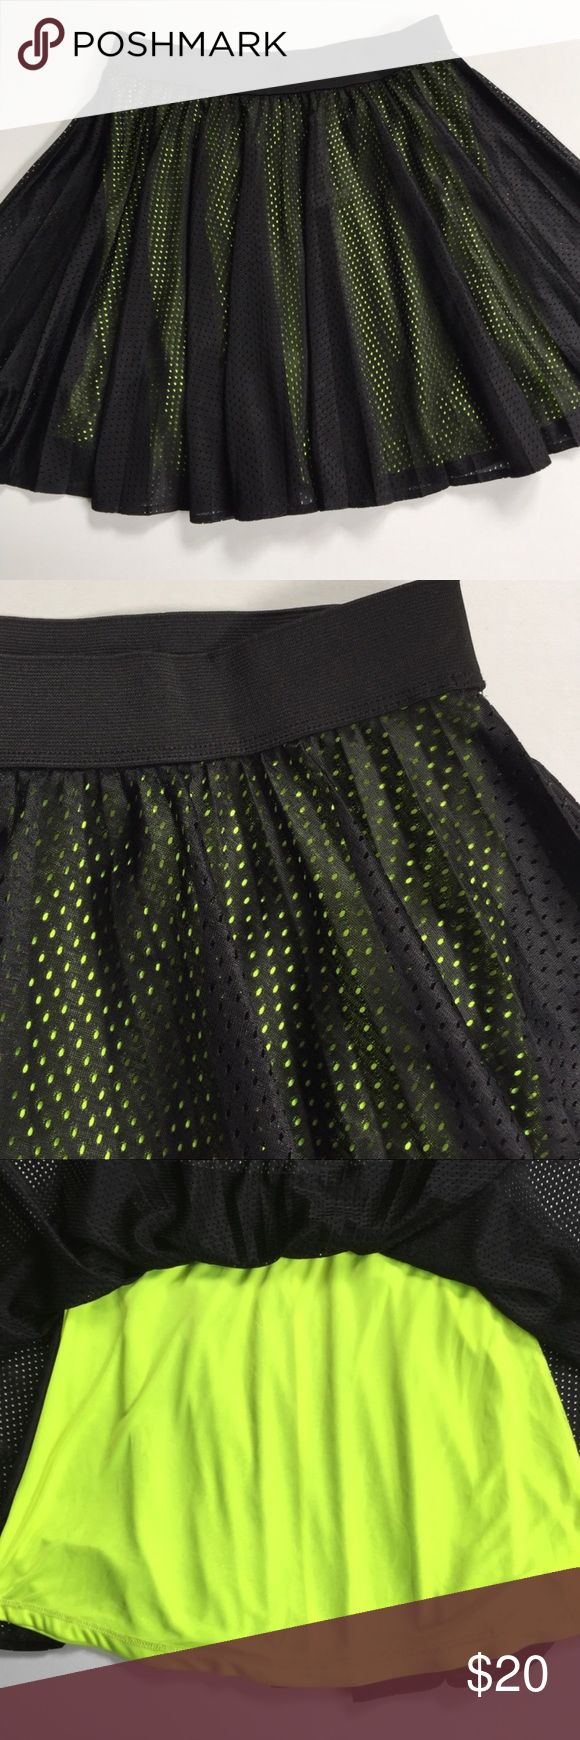 "EUC Nanette Lepore skirt Excellent condition; Adorable and fun! Black mesh skater skirt with neon yellow underneath; elastic waist; polyester, super comfy and lightweight; approx. 17"" long; L'Amour by Nanette Lepore; smoke-free/pet-free home. Nanette Lepore Skirts"